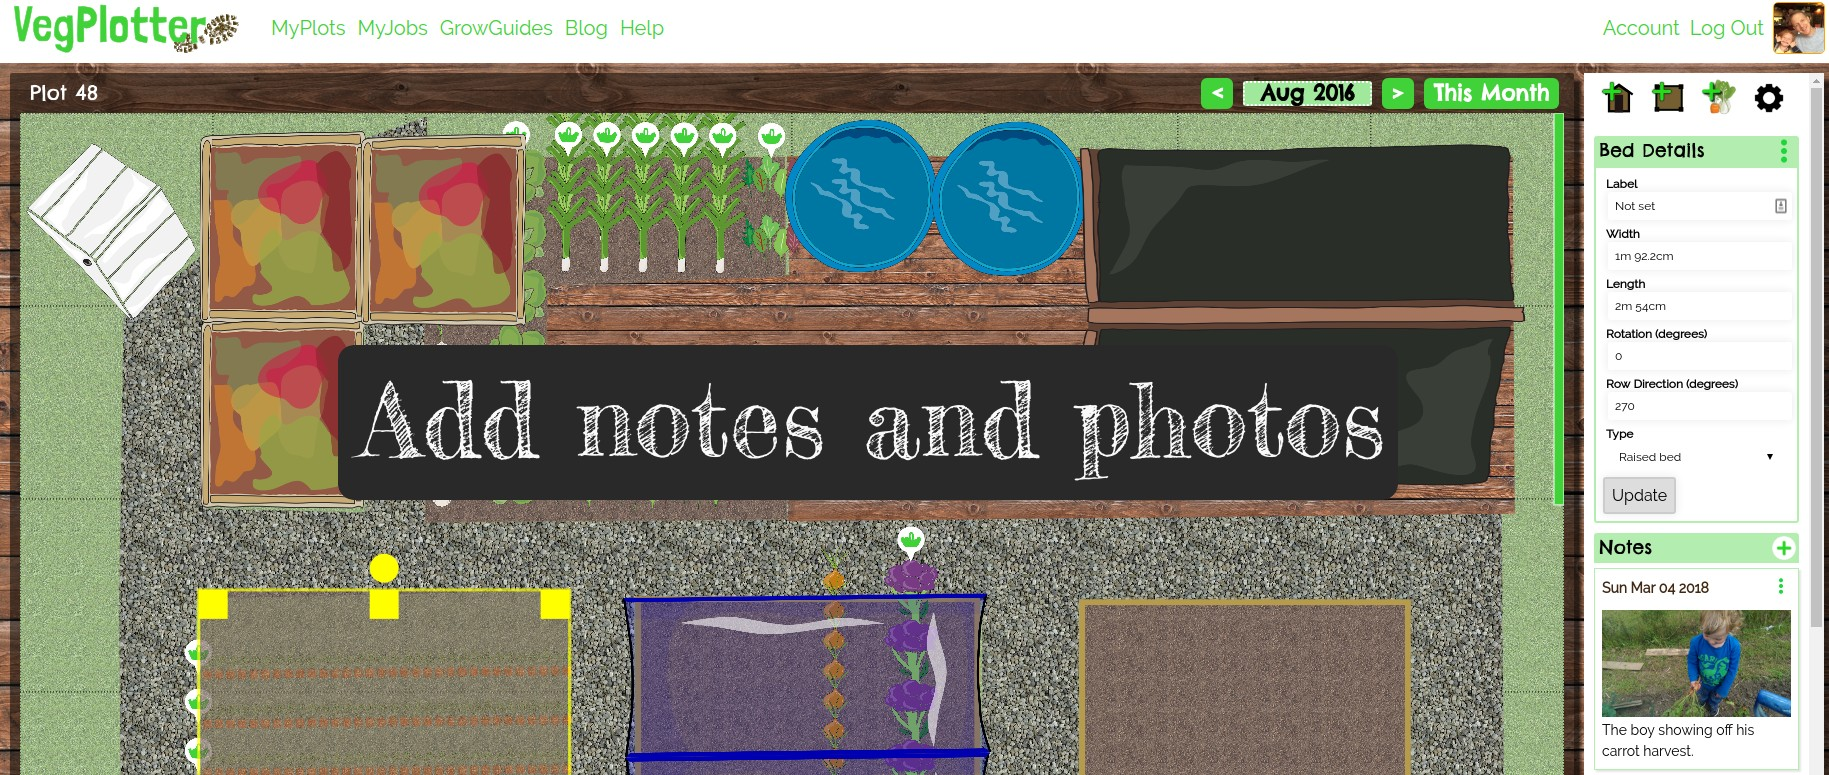 We're added some new features to our vegetable garden planner.